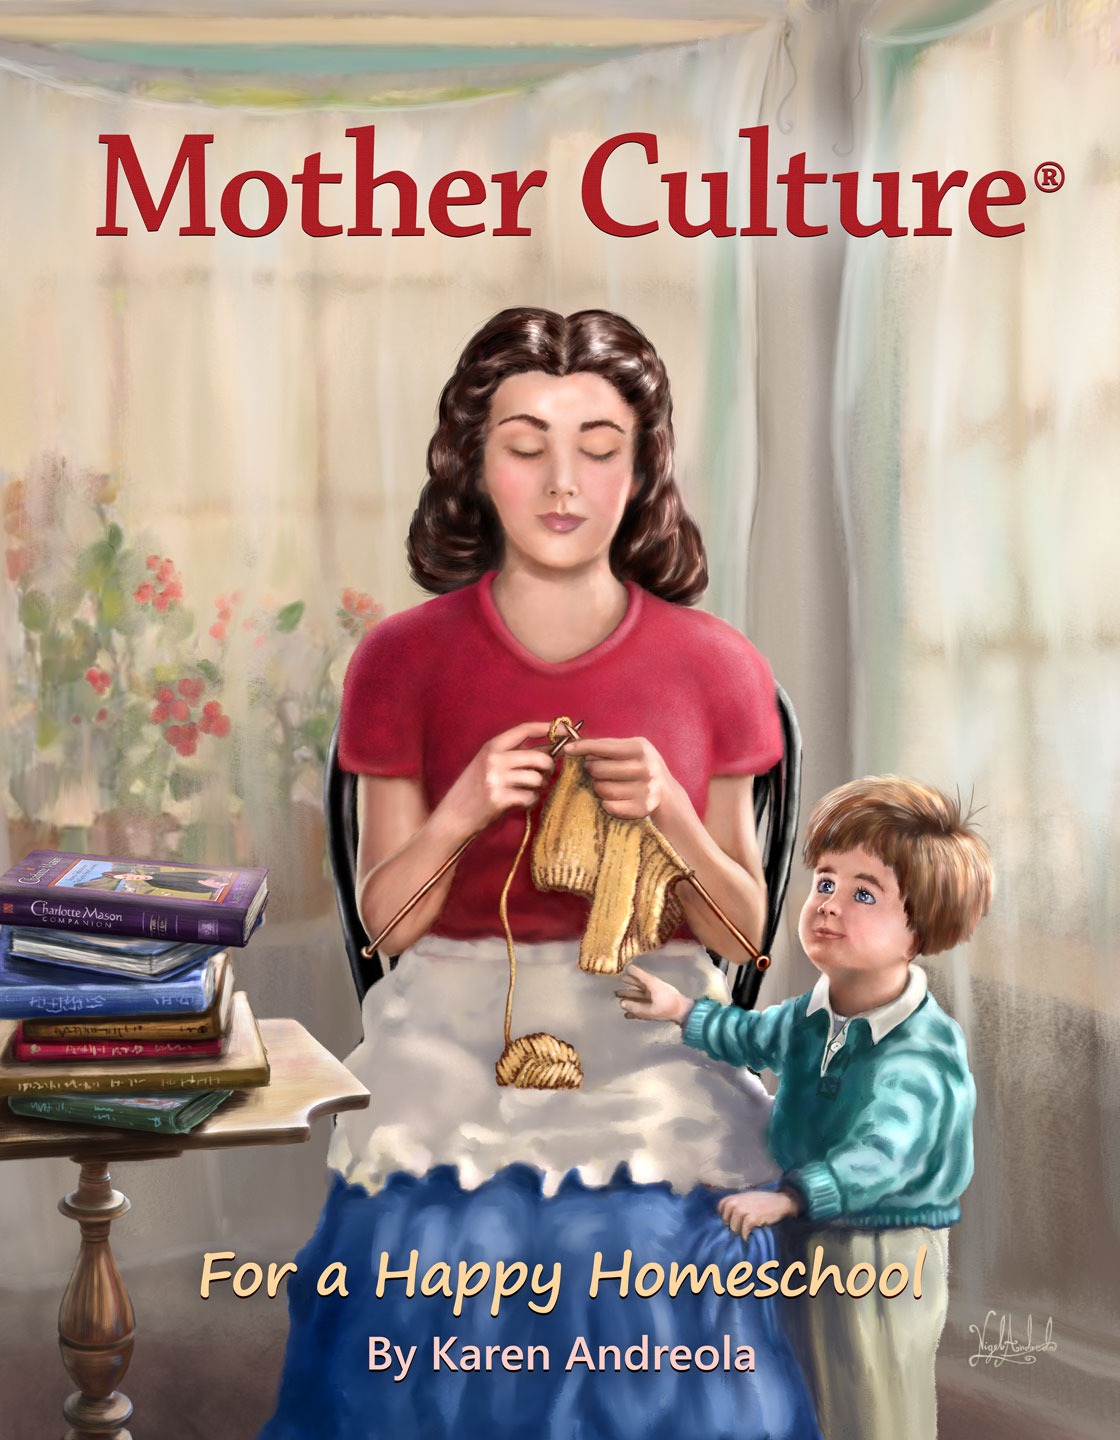 Mother Culture Book For A Happy Homeschool - By Karen Andreola